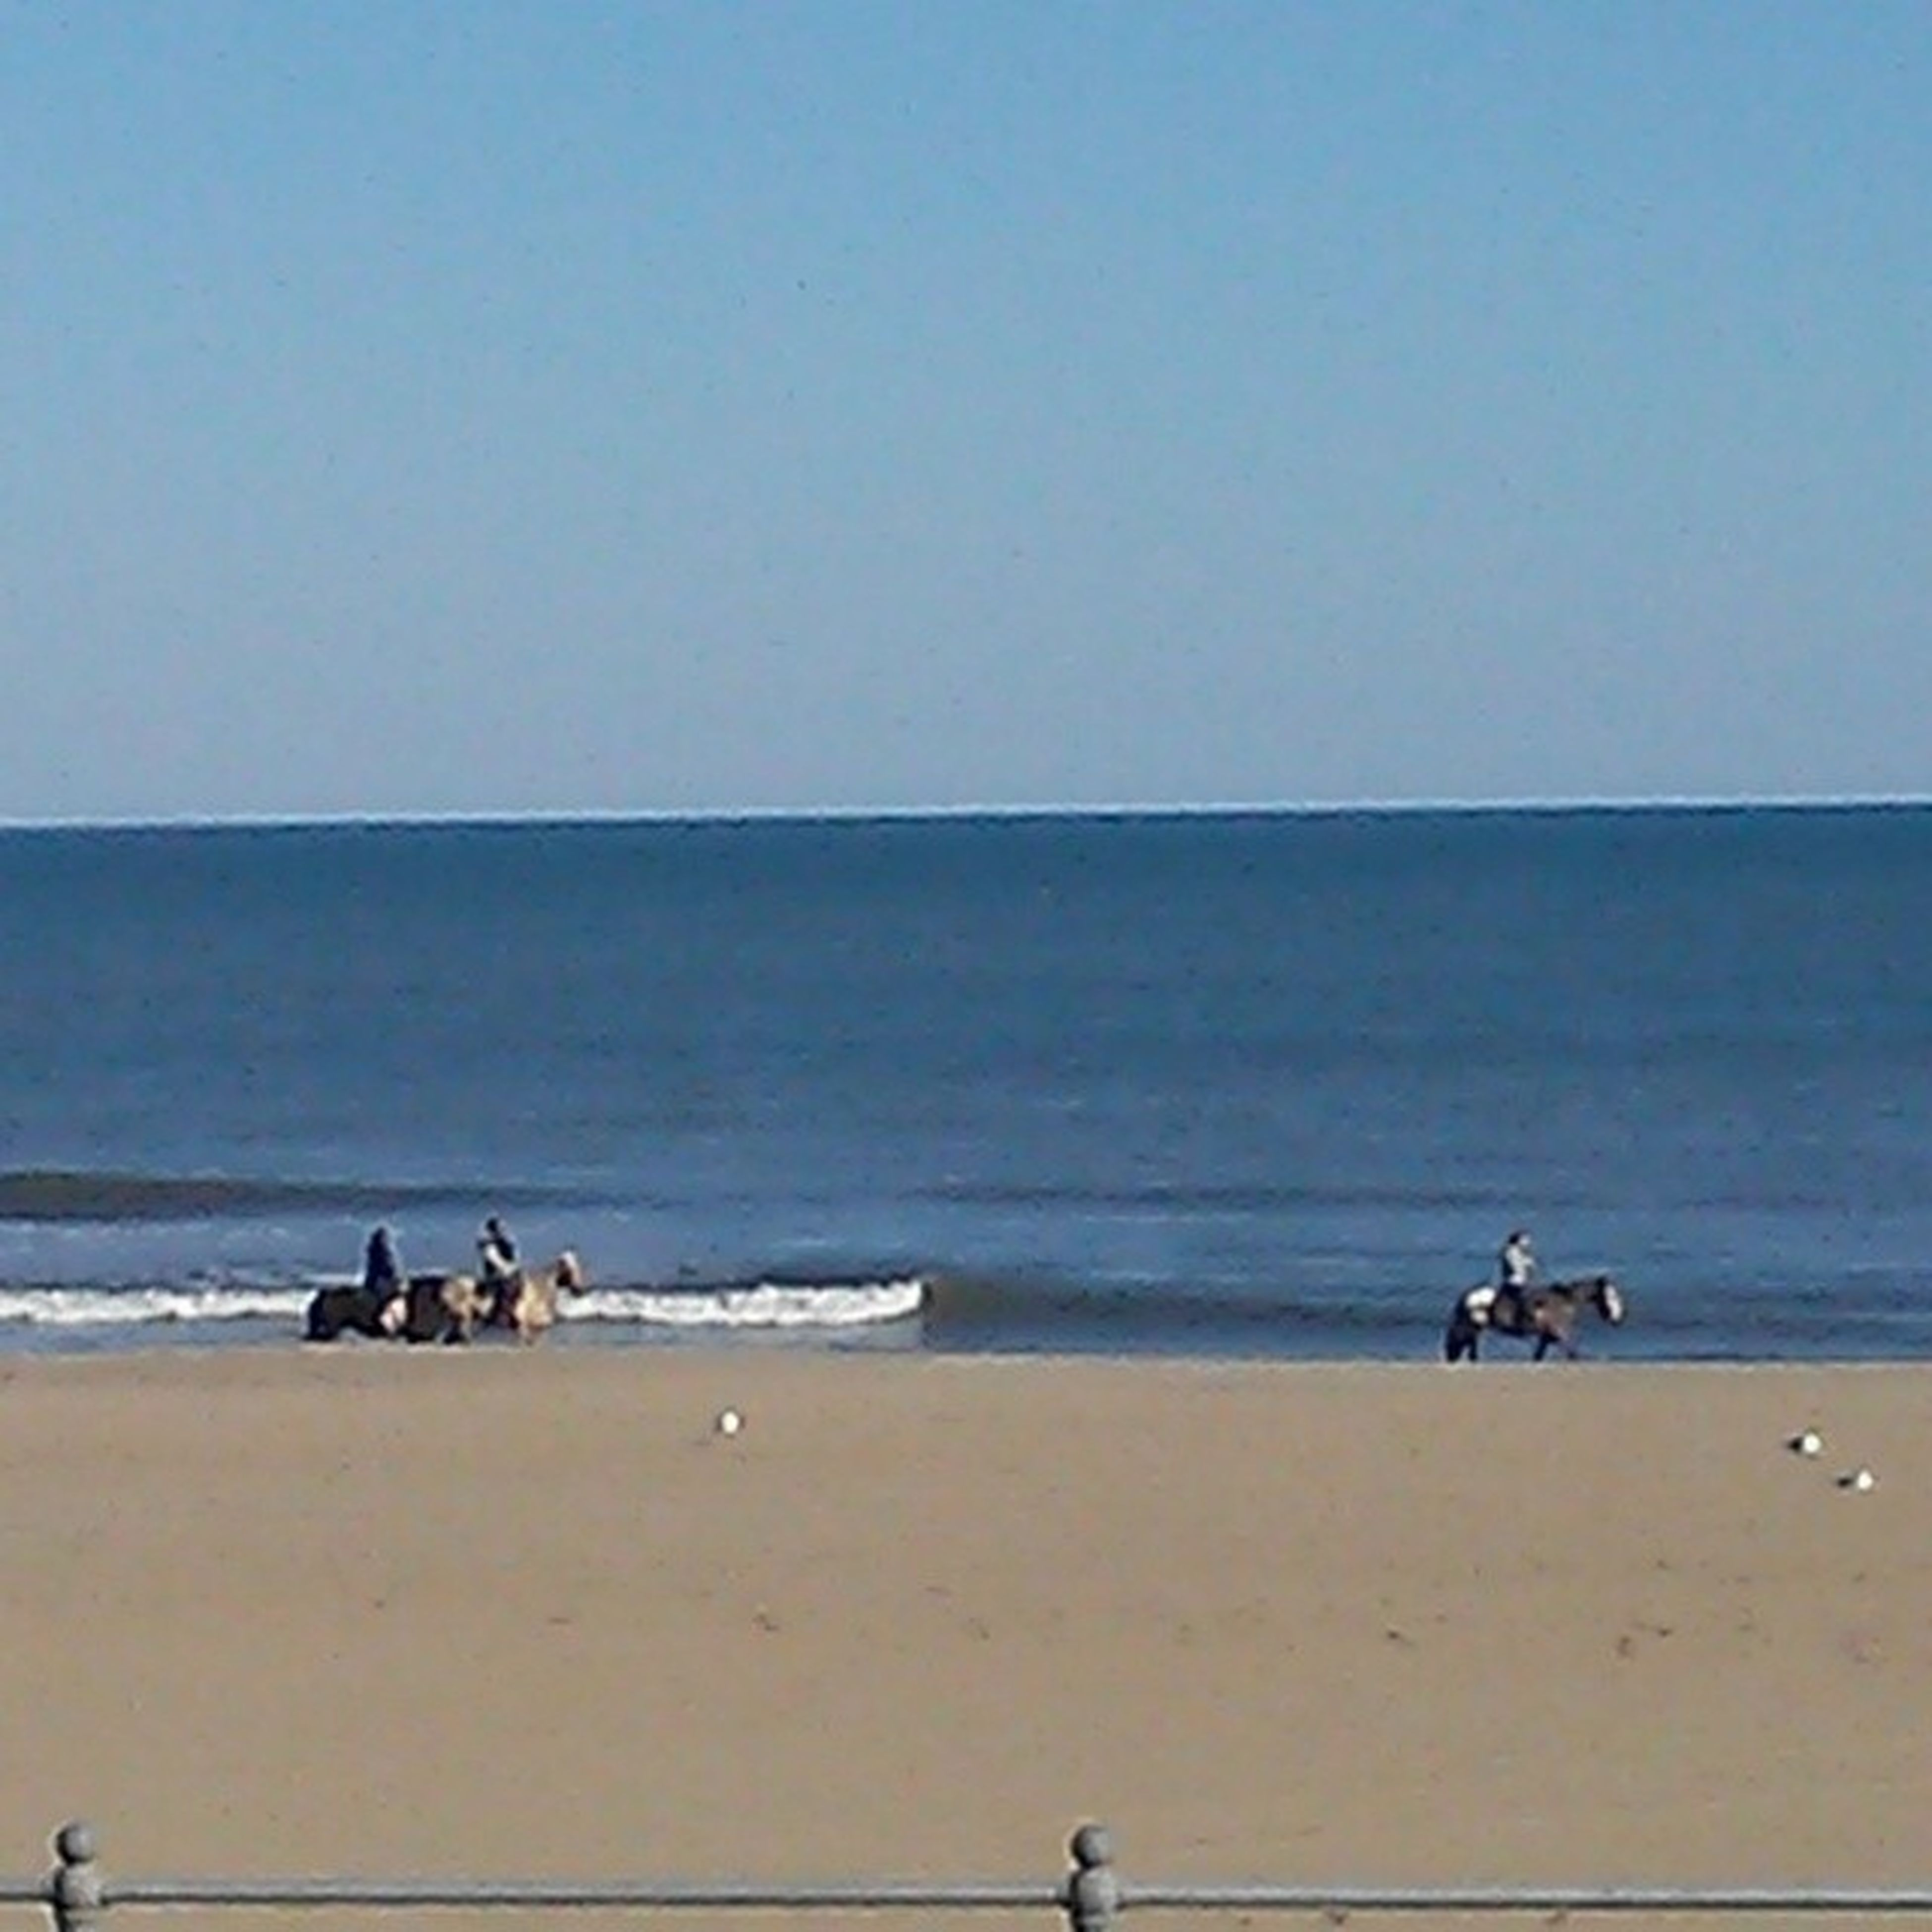 Gorgeous day for Horseriding on VirginiaBeach